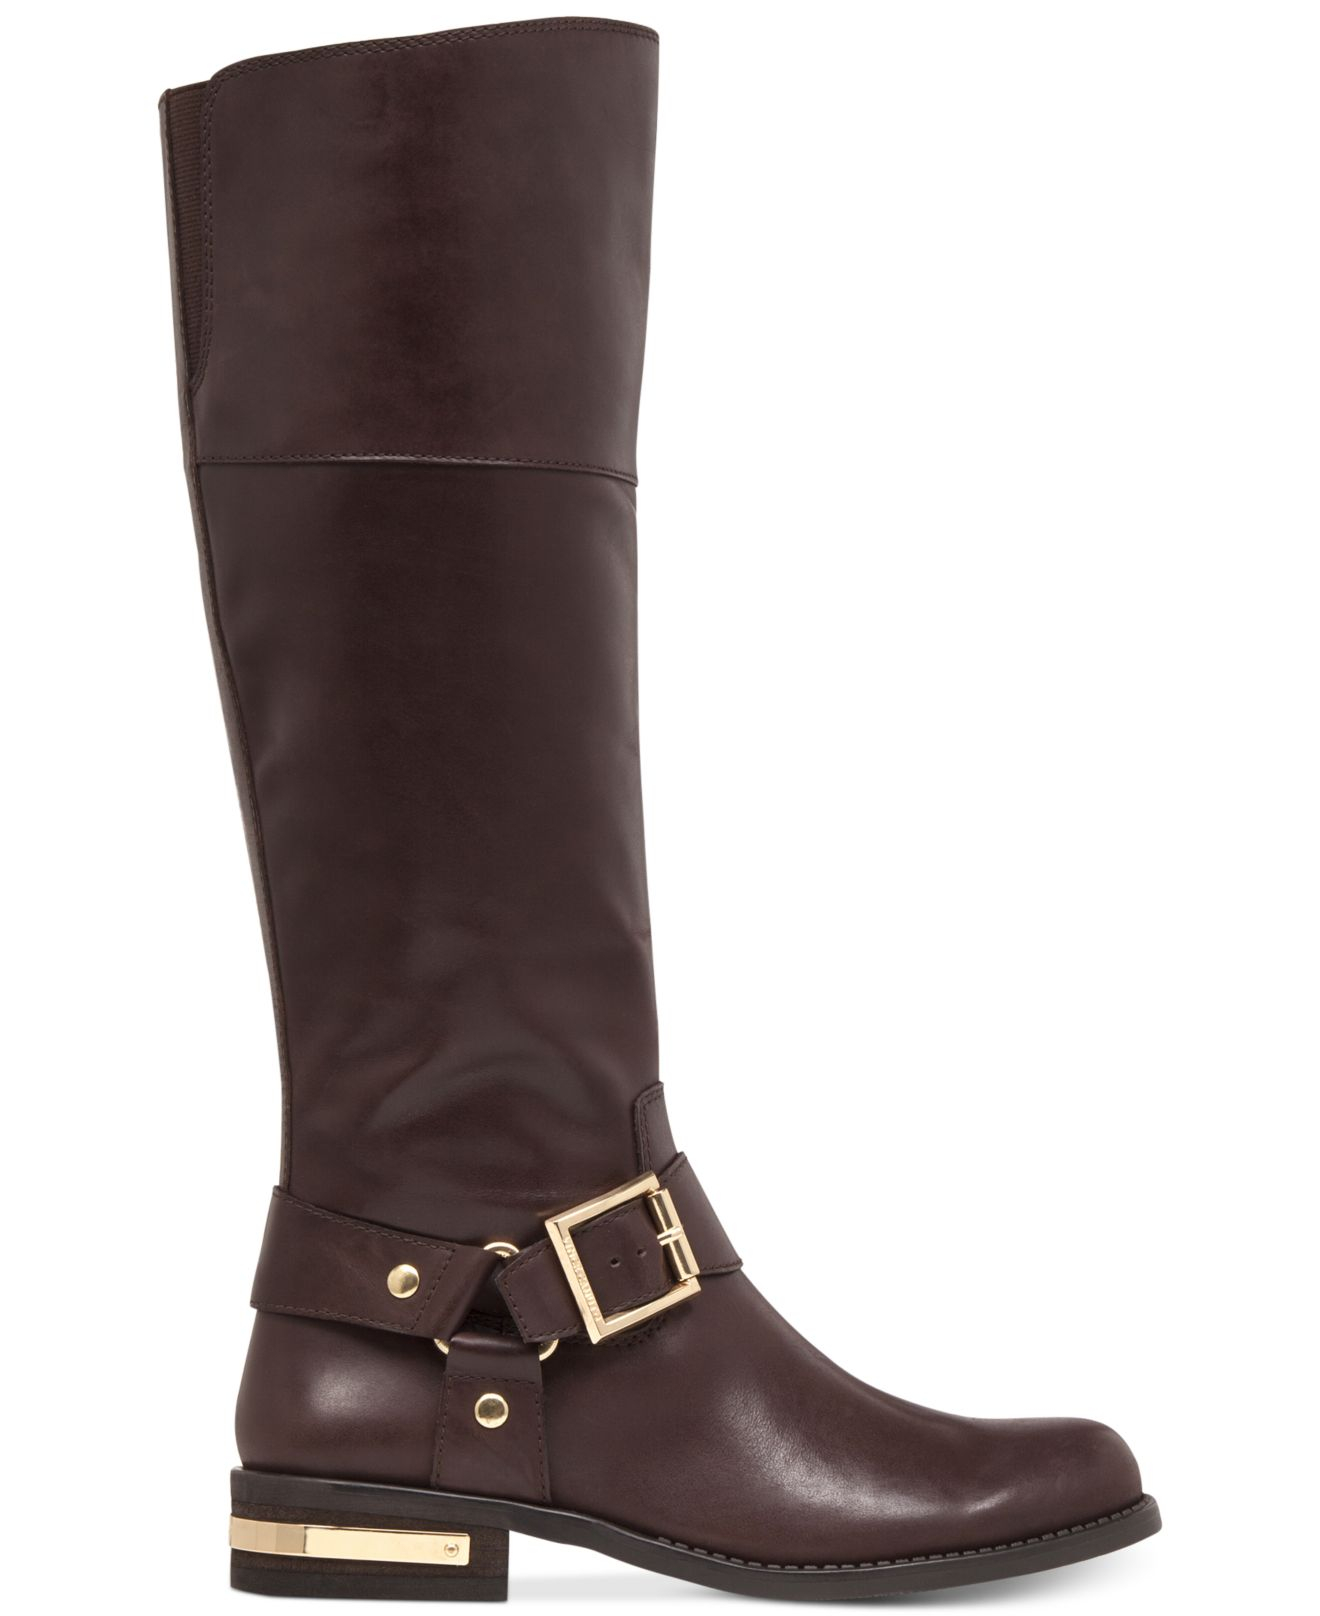 Shop for riding boots online at DSW, where we feature a large selection of women's riding boot styles from the top brands and designers in a variety of colors. Women's Boots & Booties.